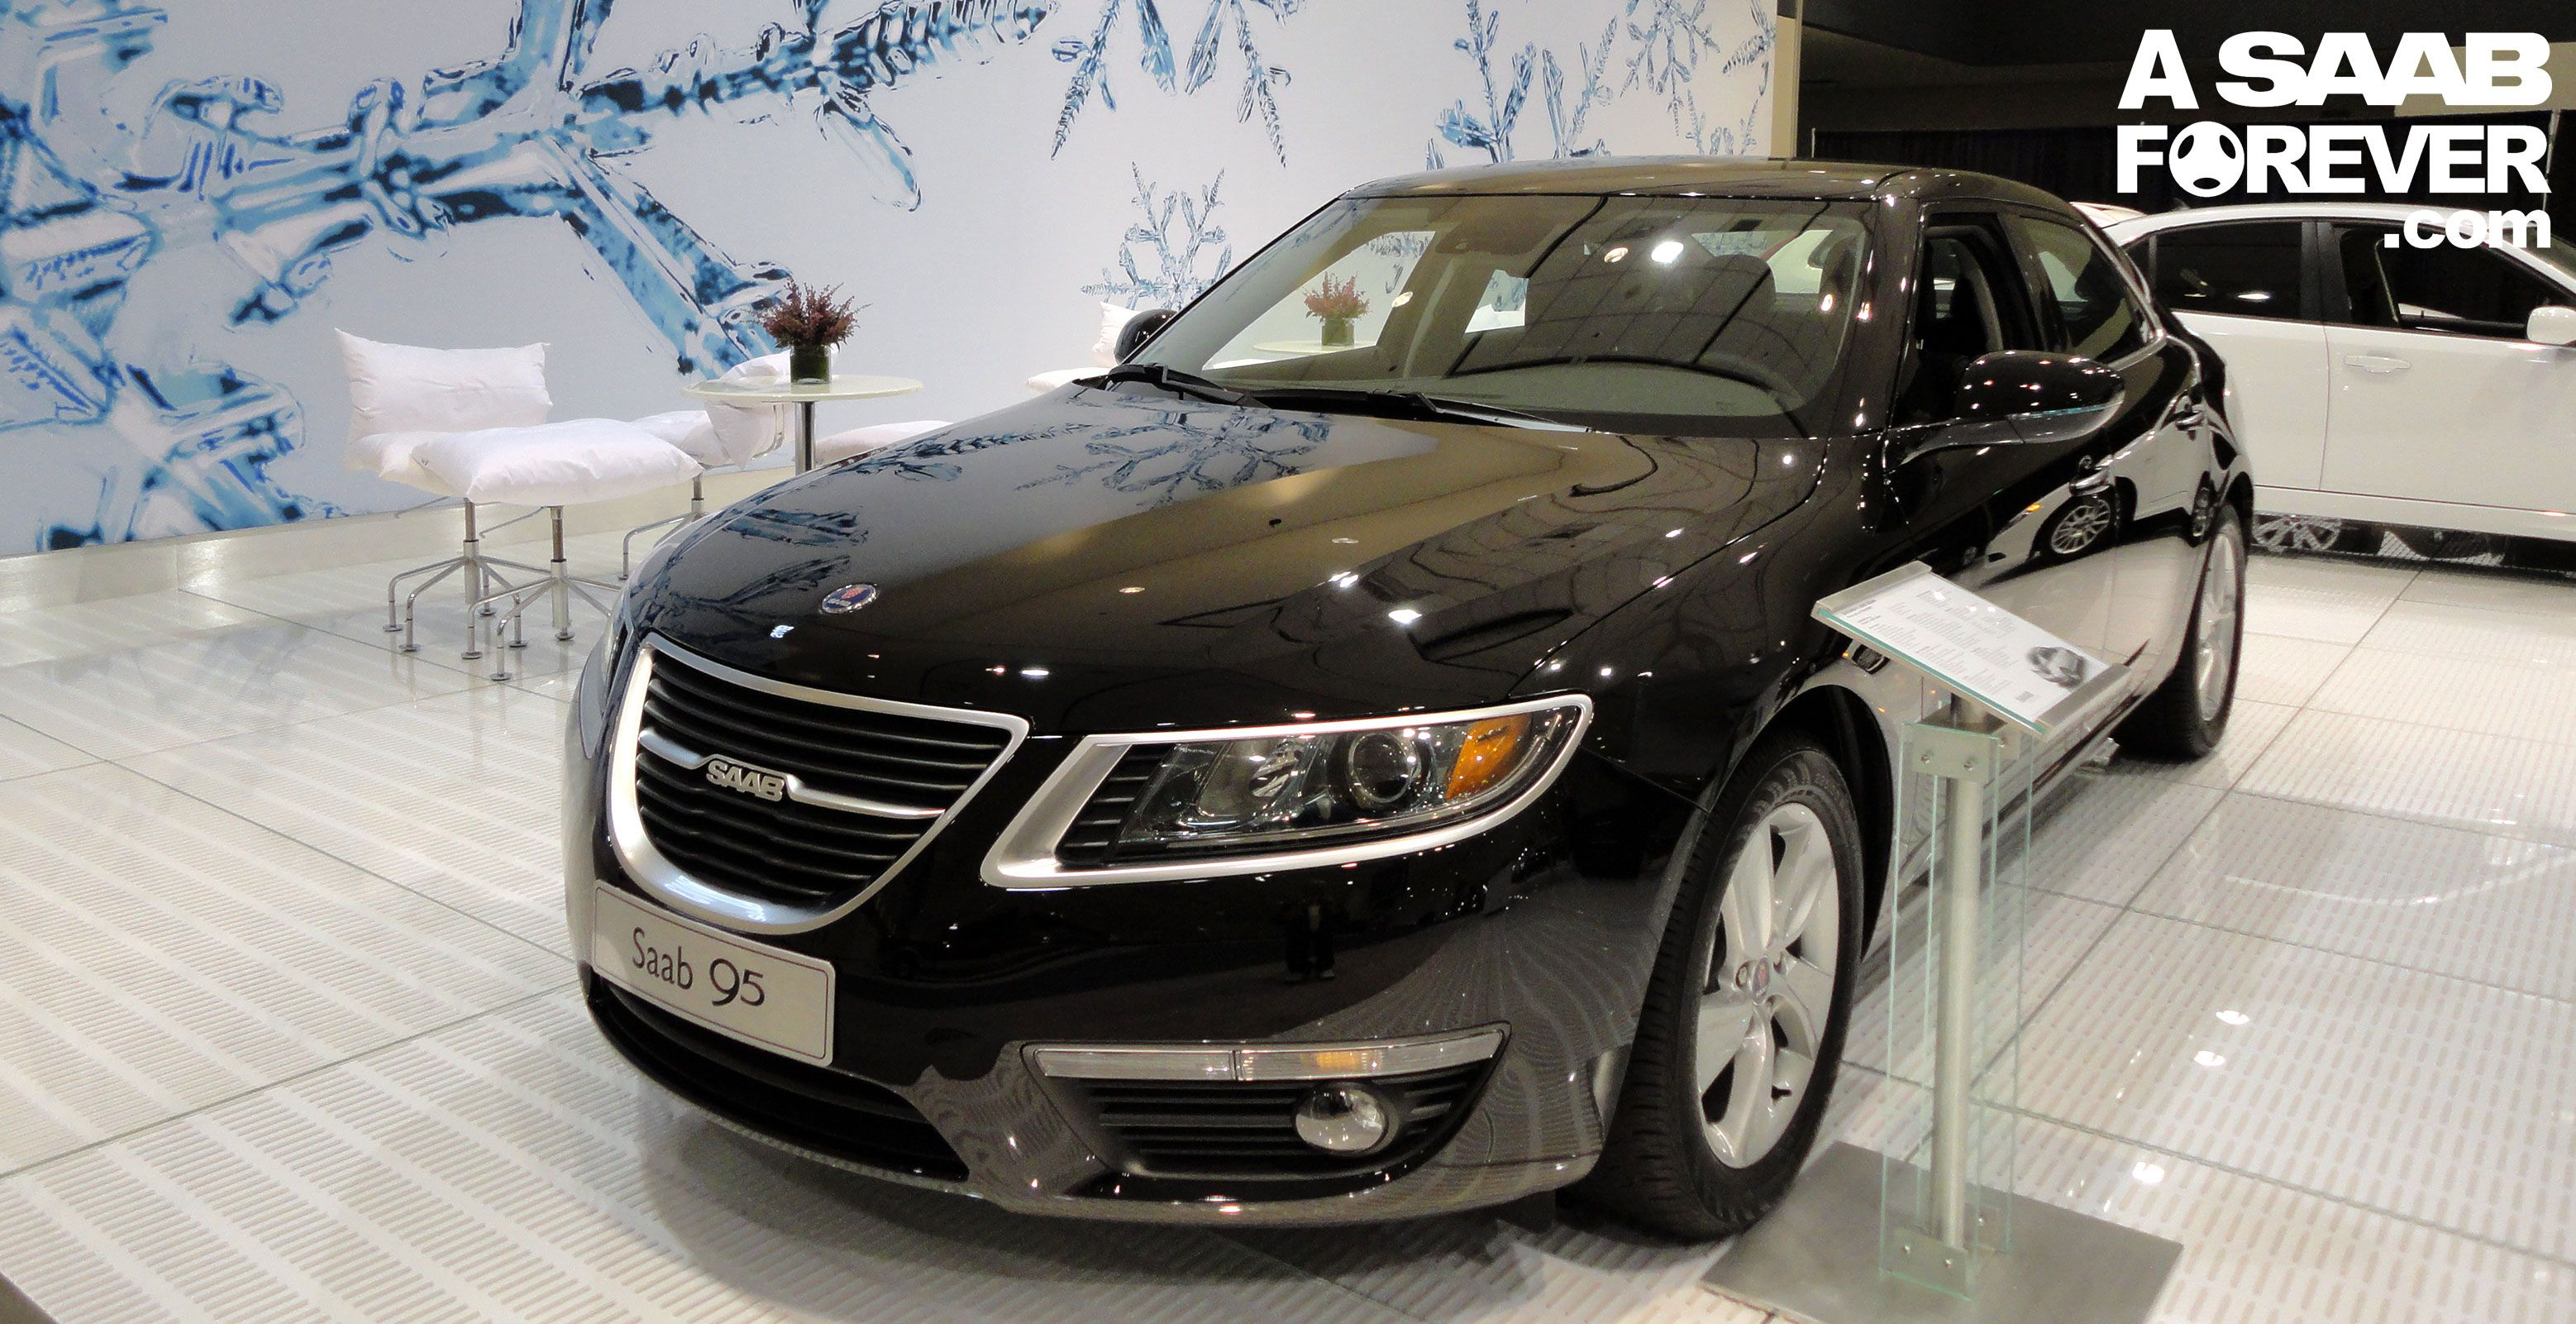 SAAB Parts, Keys, Performance & Lost Key Solutions From